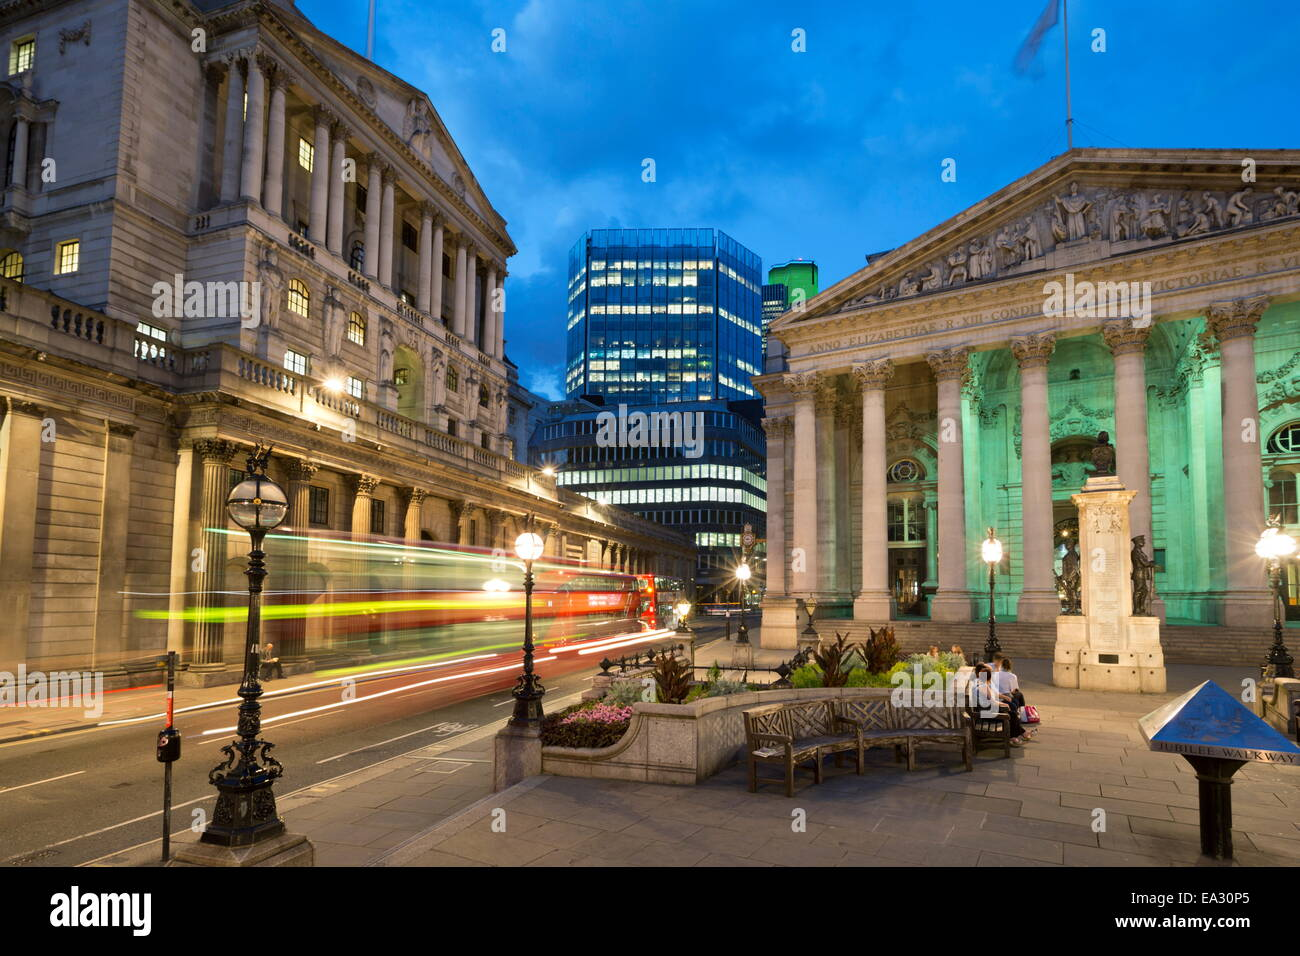 Royal Exchange and the Bank of England, Threadneedle Street, London, England, United Kingdom, Europe - Stock Image